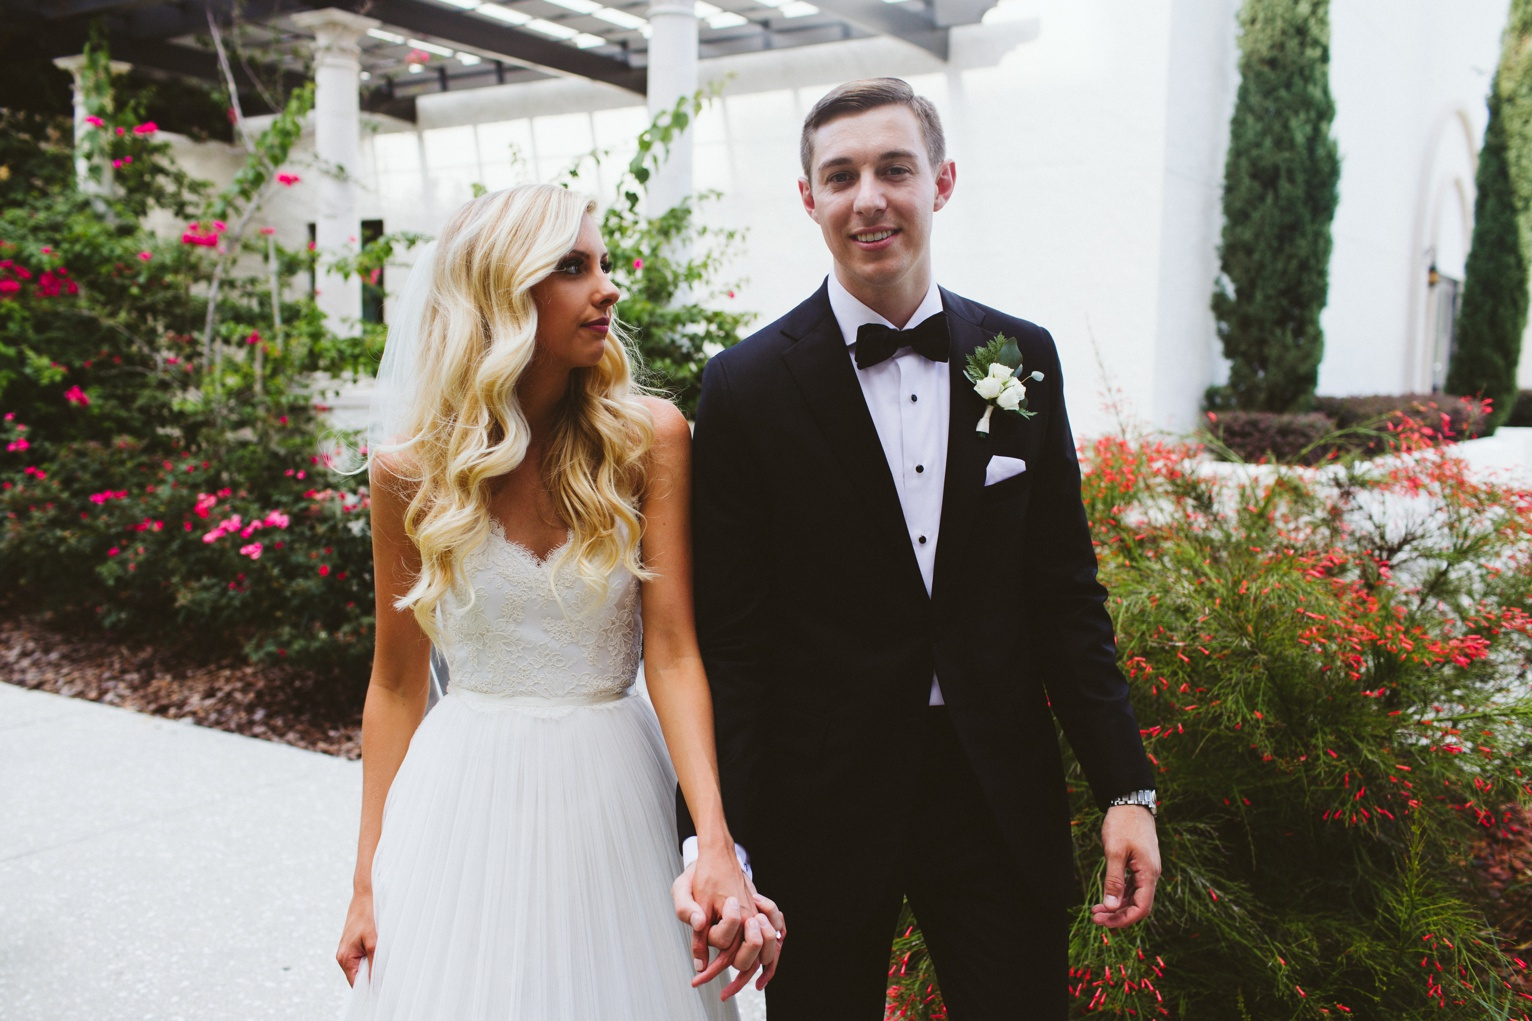 Dreamtownco.com_blog_Jordan&Lindsey_Wedding__0097.jpg